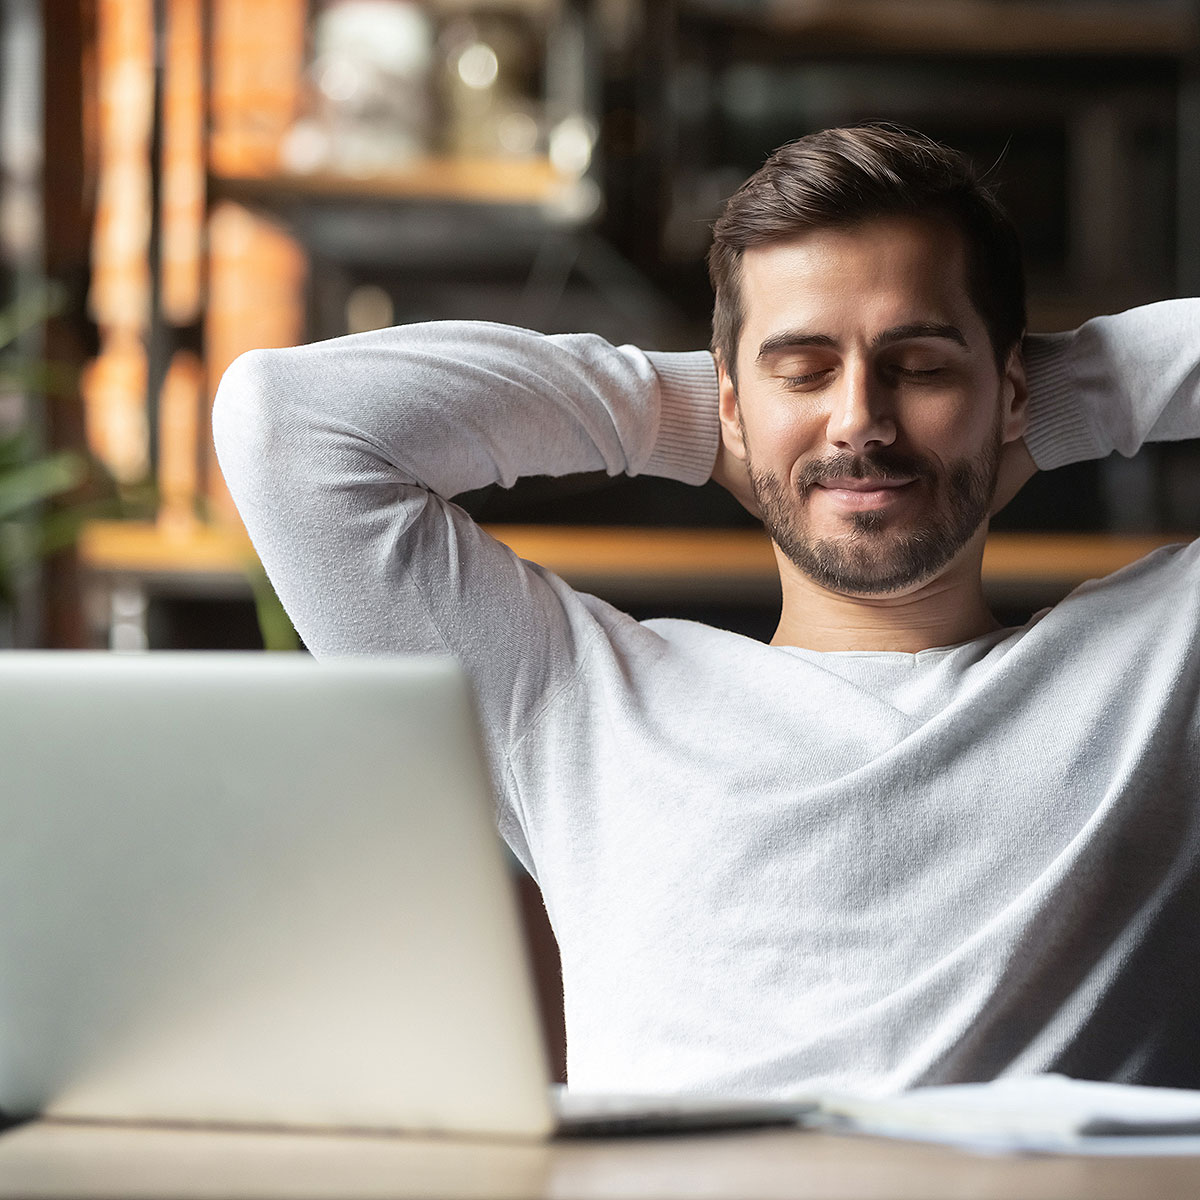 image of man relaxing and recognizing his progress towards success